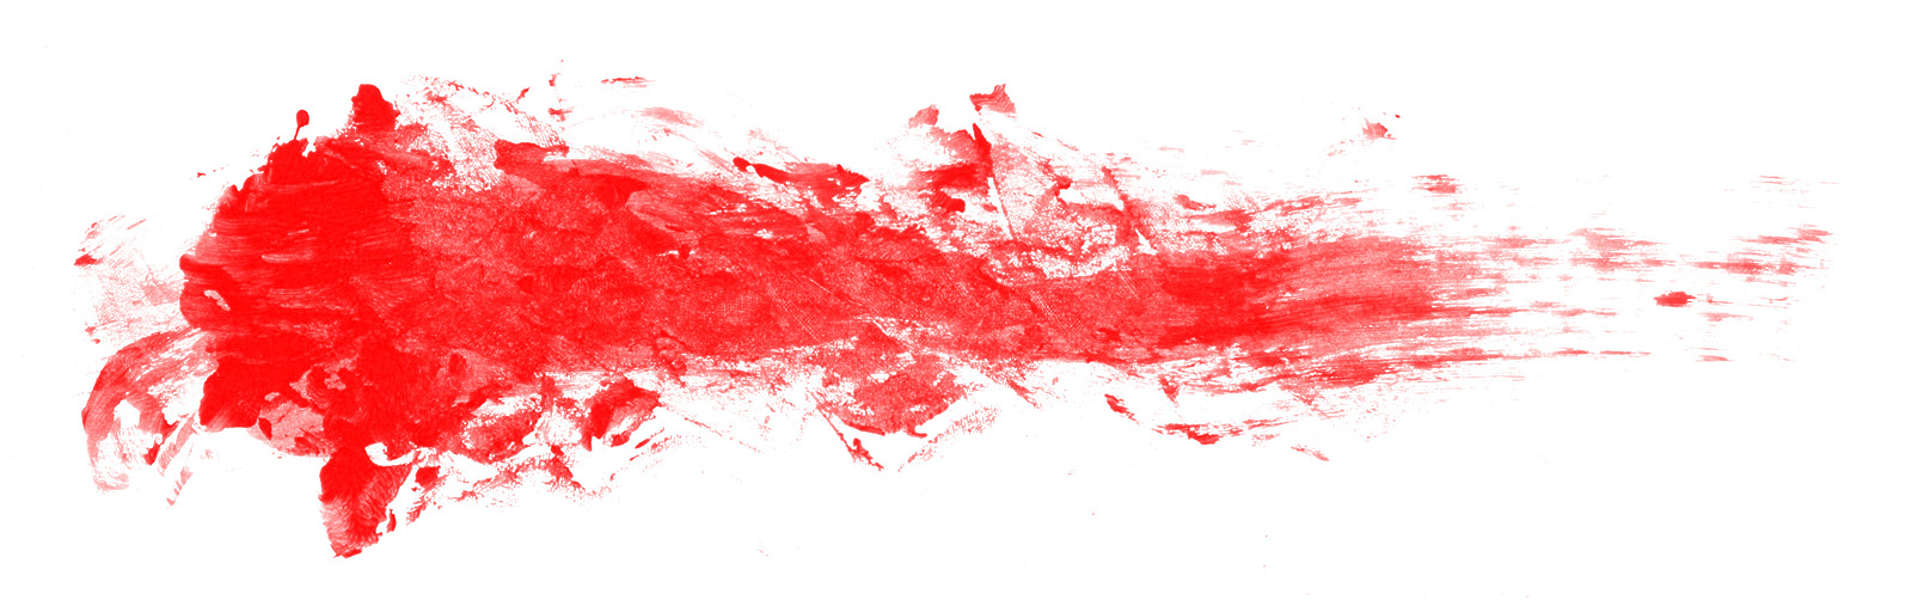 Splattersmear0037 Free Background Texture Smear Stain Red